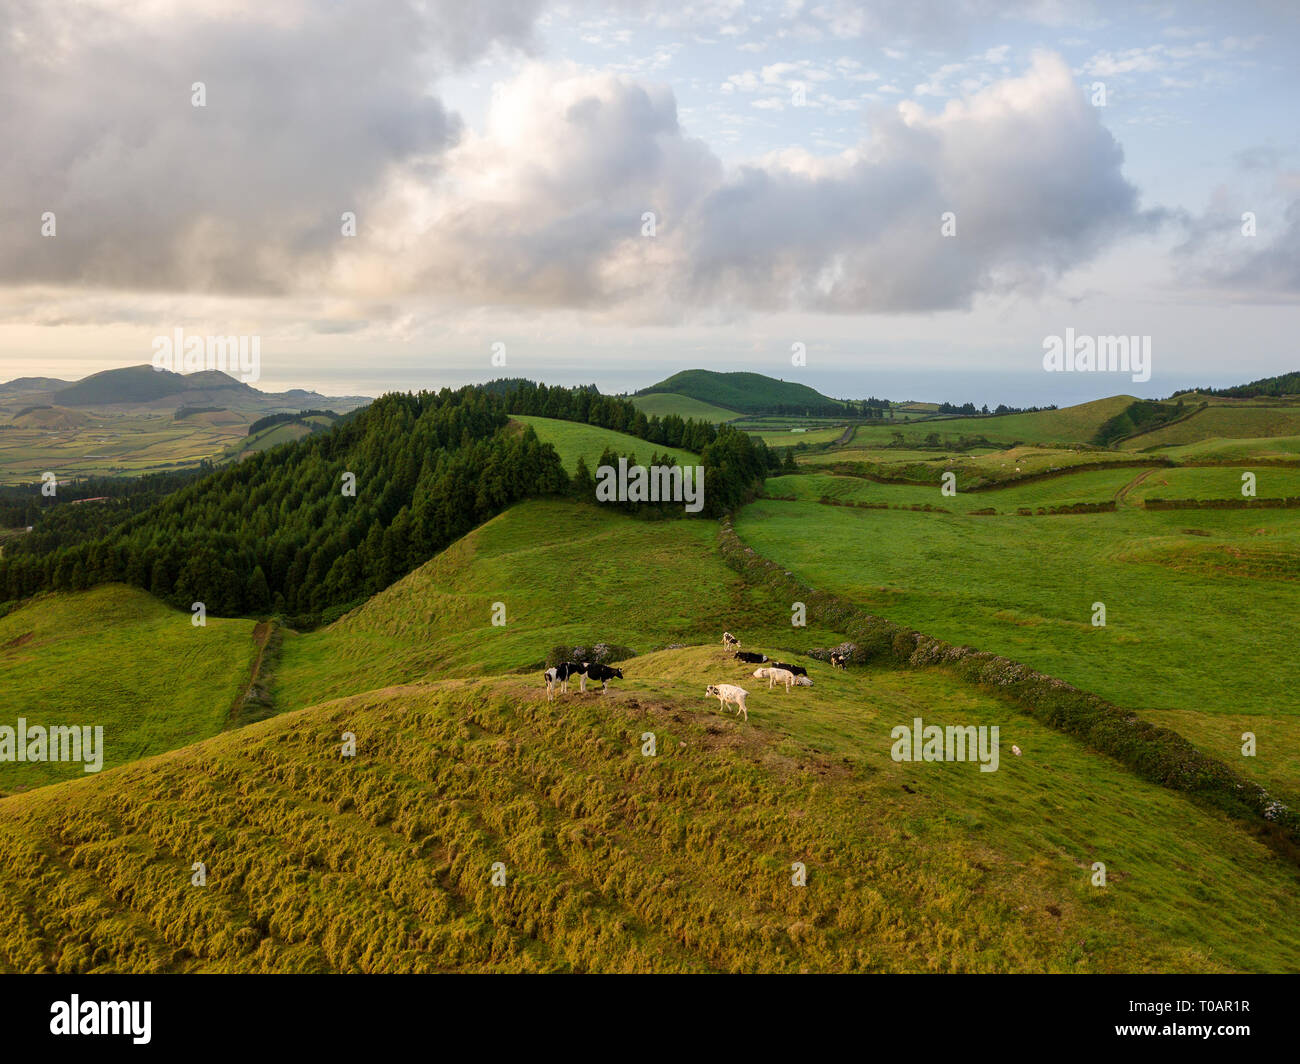 Drone view of typical azores landscape coastal with cows in a rural aerial view. Bird eye view, aerial panoramic point of view. Portugal tscenic desti - Stock Image